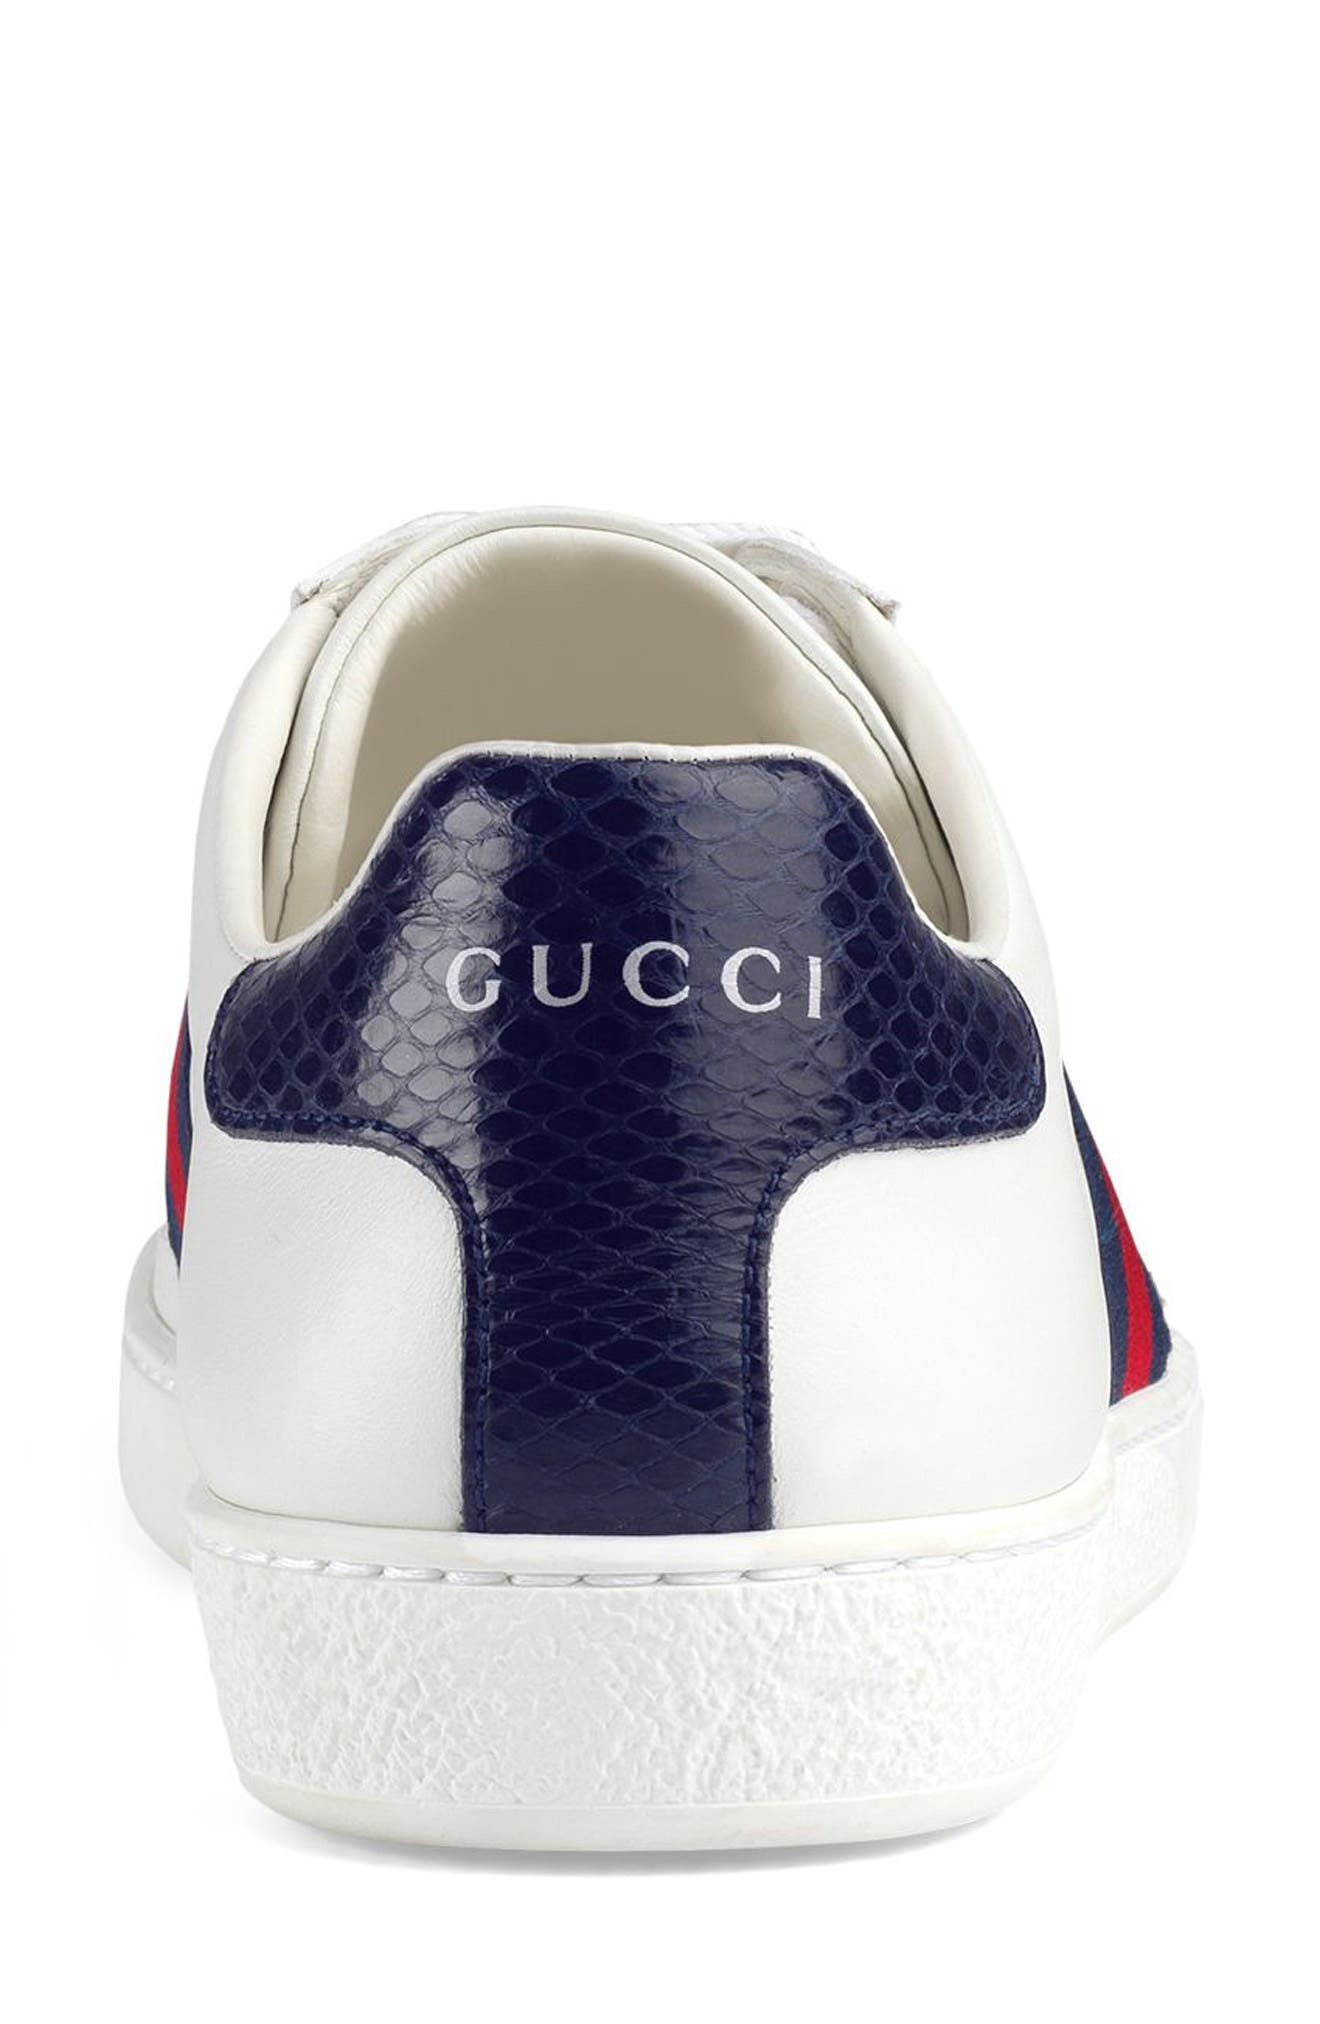 GUCCI, 'New Ace' Sneaker, Alternate thumbnail 5, color, WHITE/ BLUE